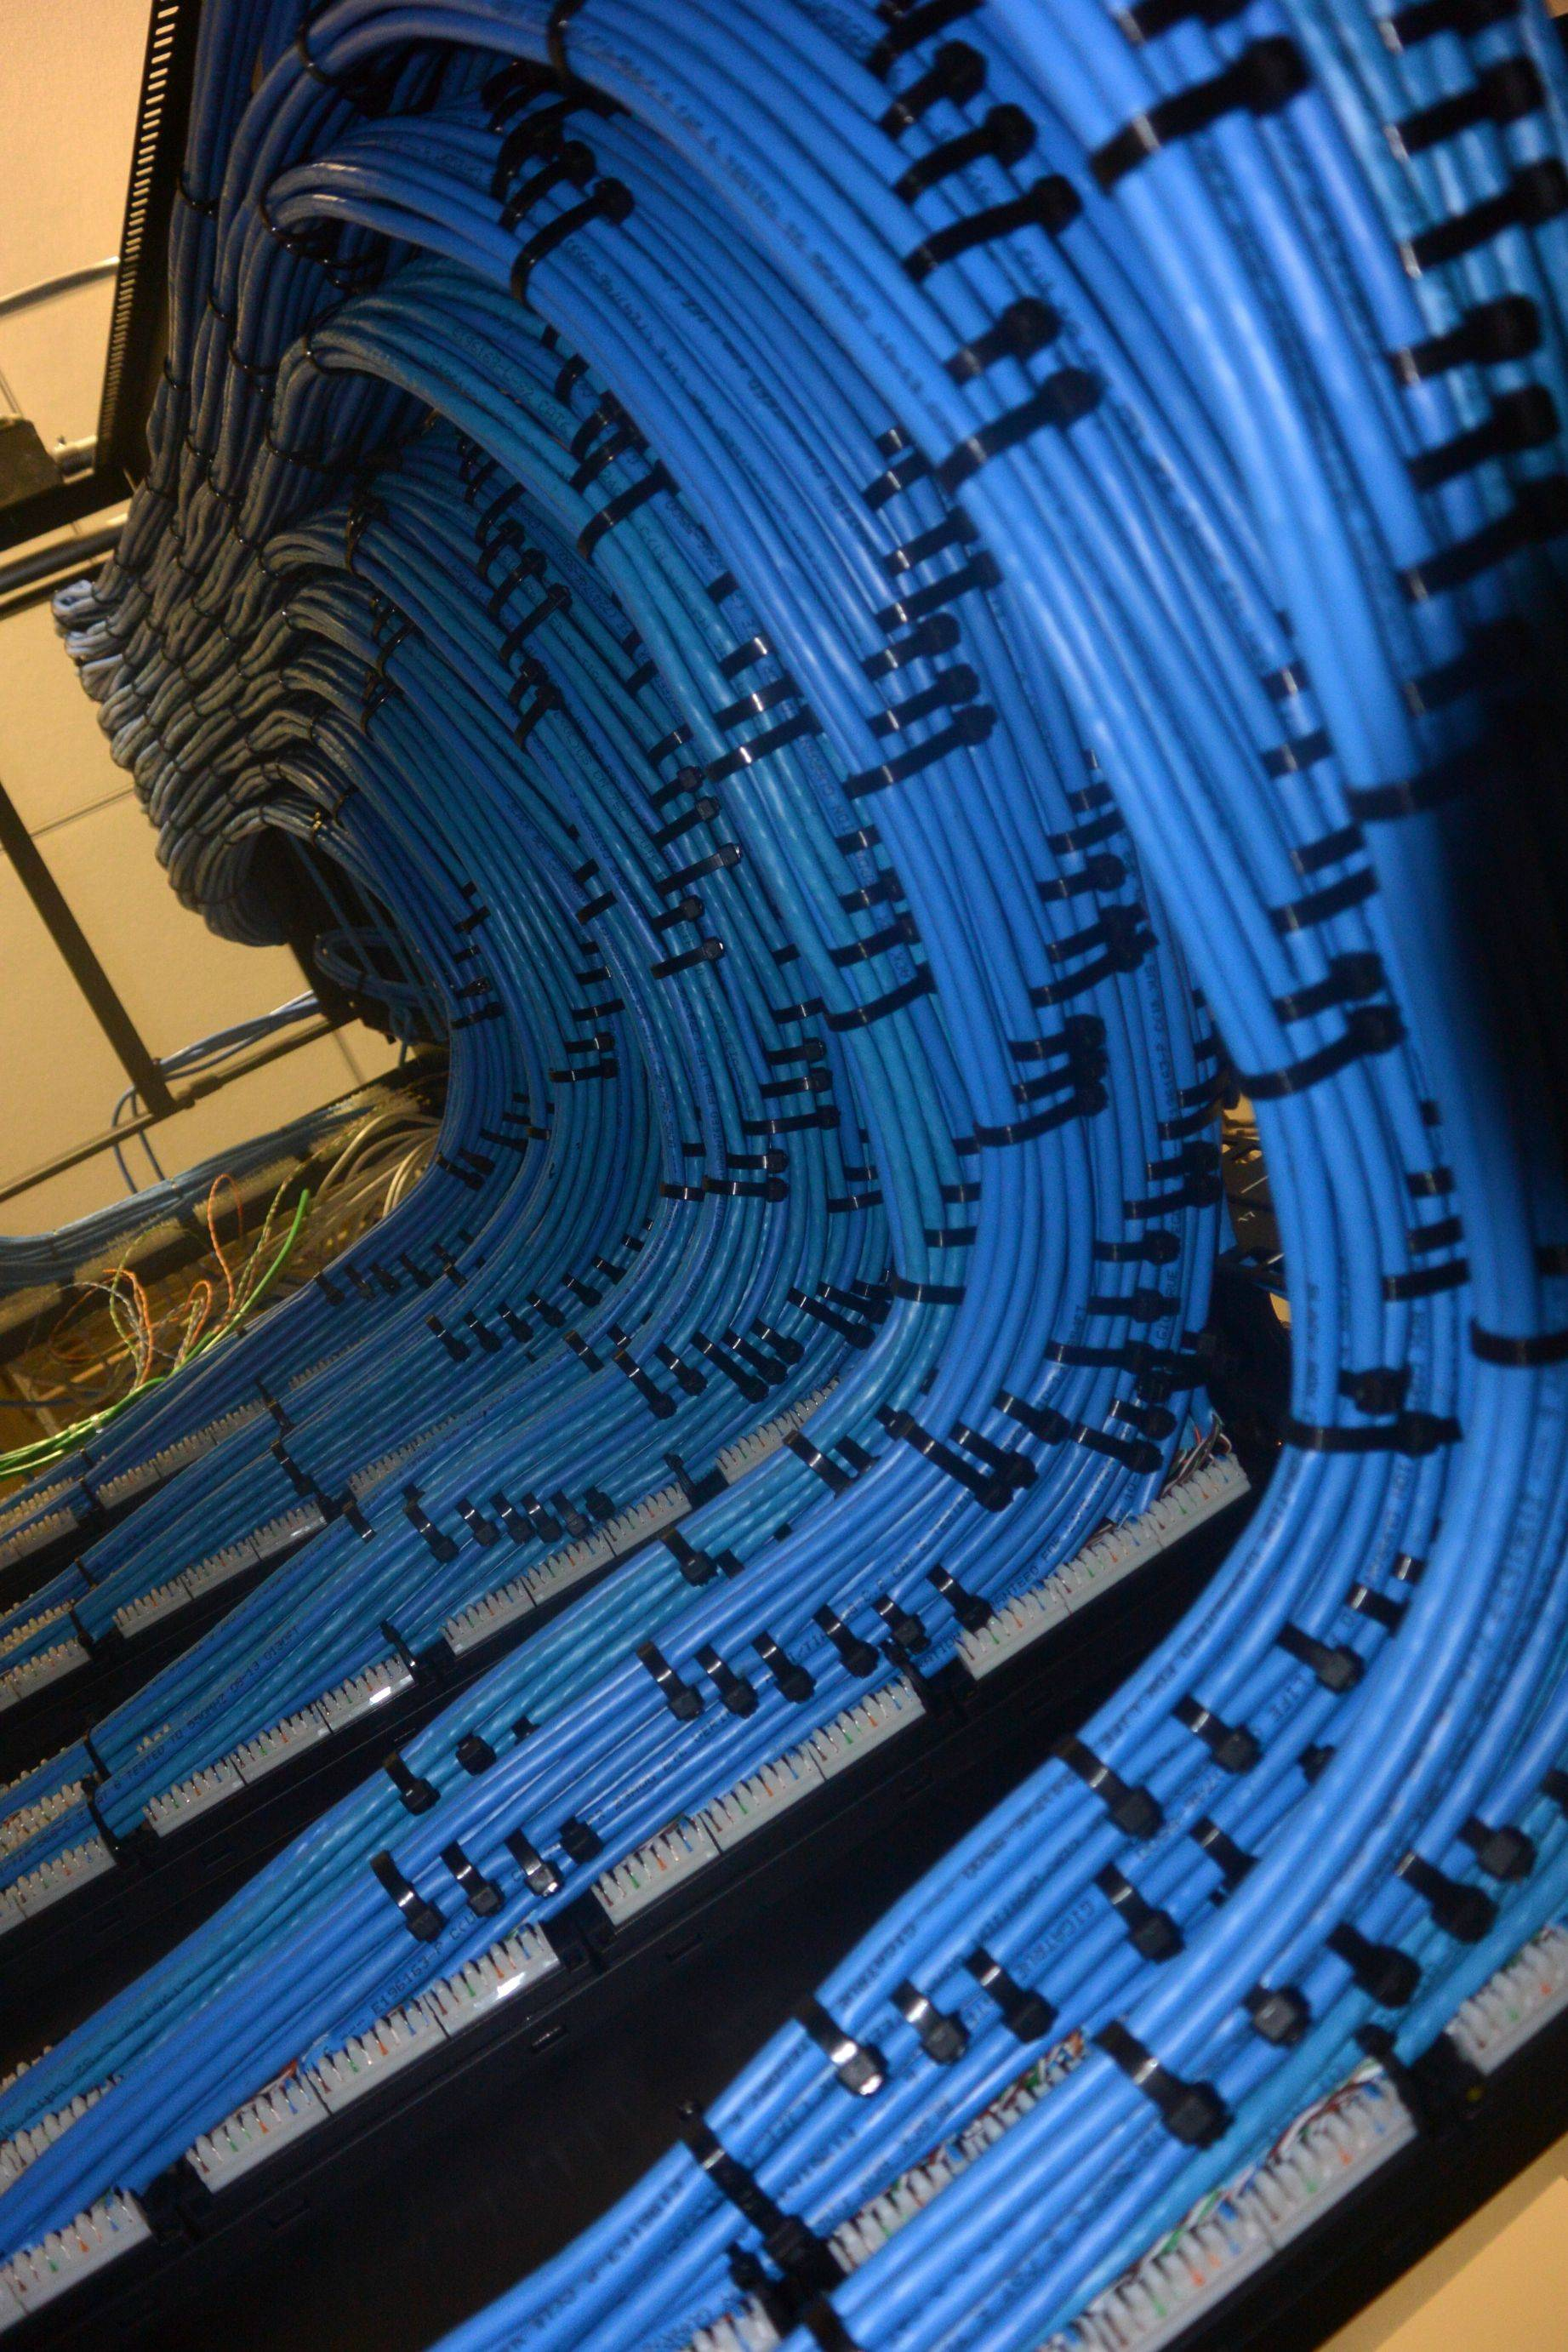 17 Neat Cable Bundles That Will Delight Your Ocd Planet